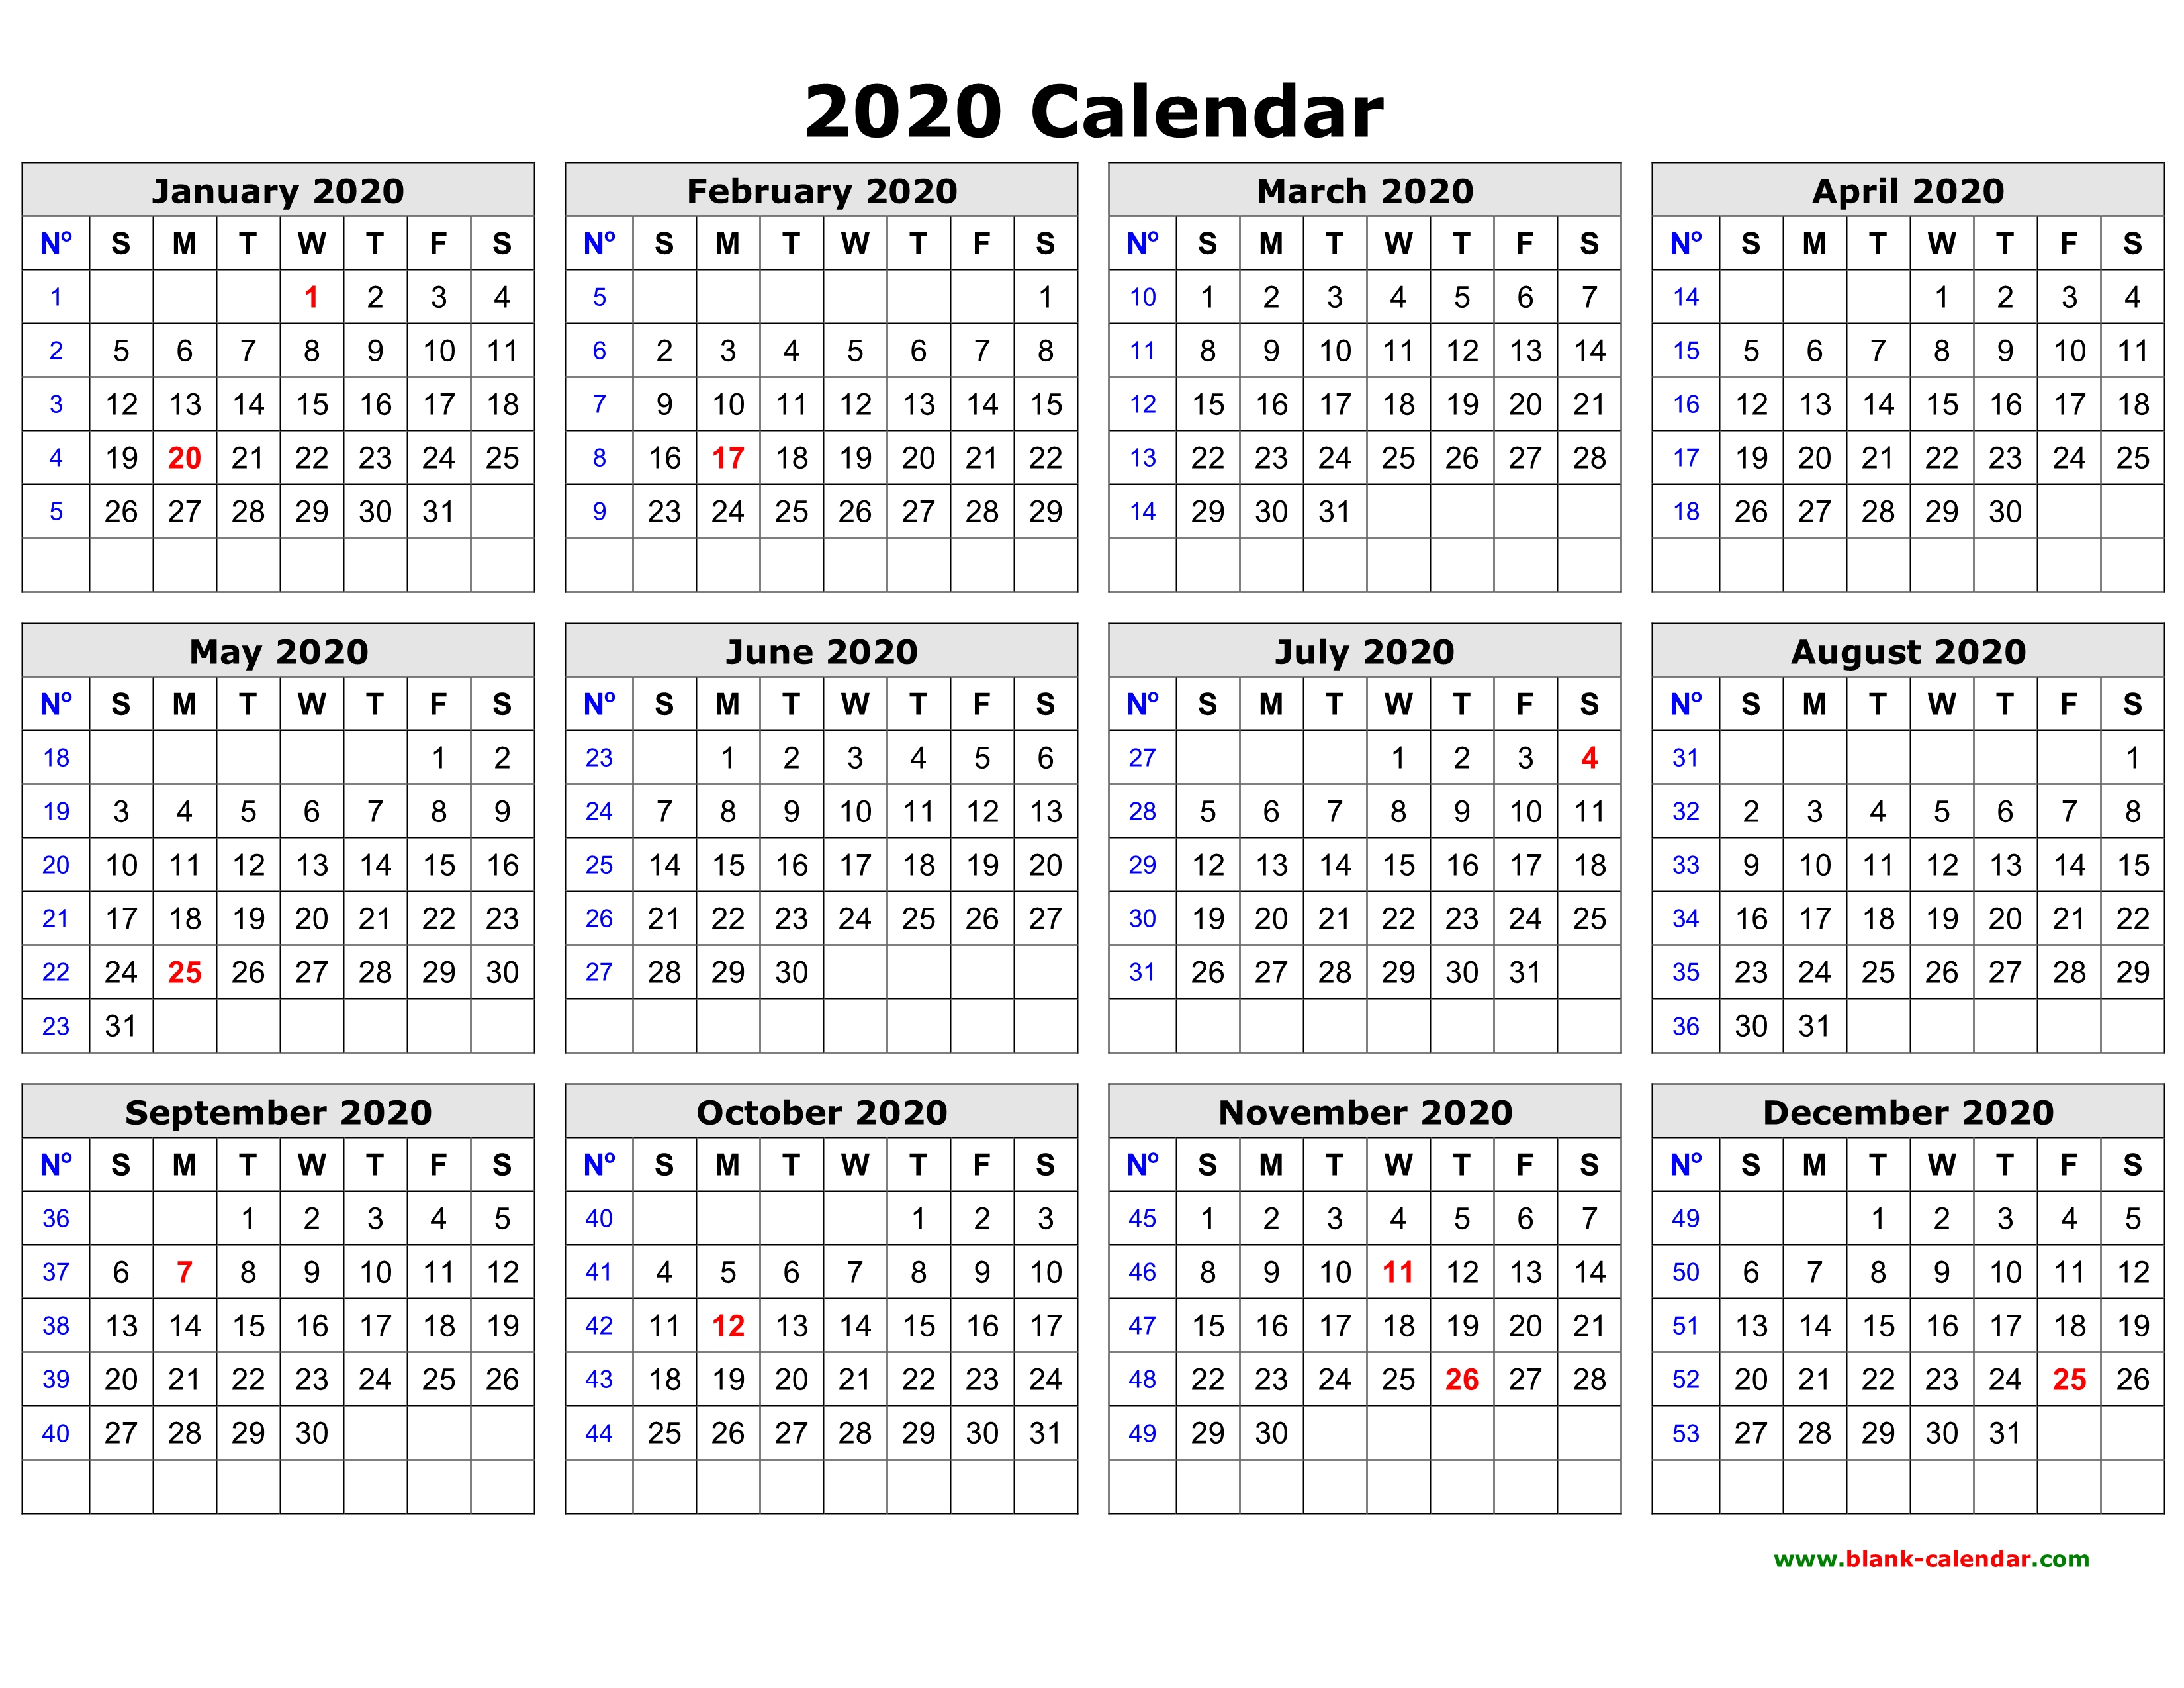 Free Download Printable Calendar 2020 In One Page, Clean Design. in Free Calendar 2020 Printable Without Download